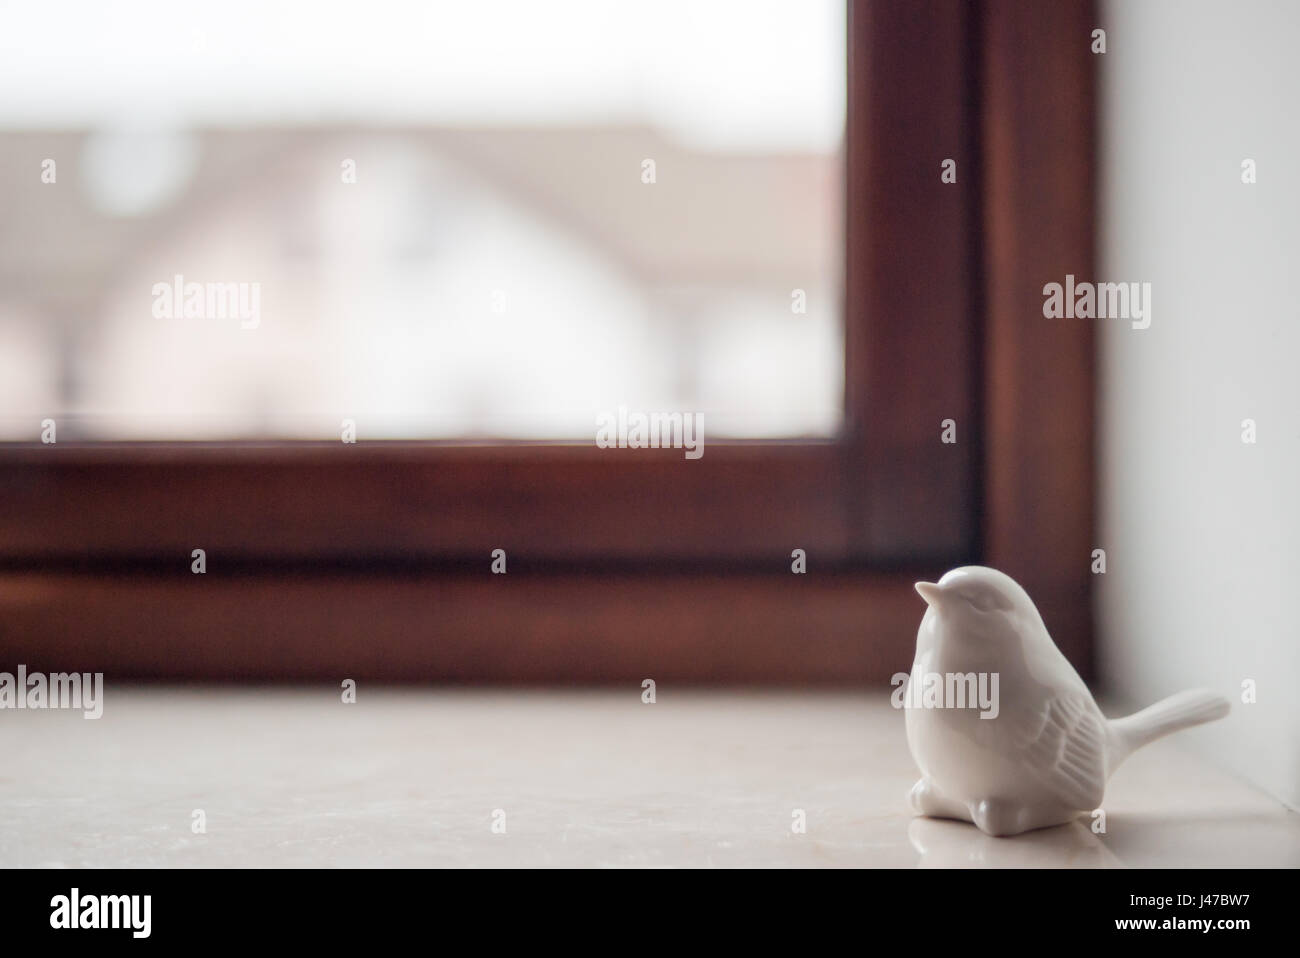 A window with a clay sparrow on a marble window sill - Stock Image